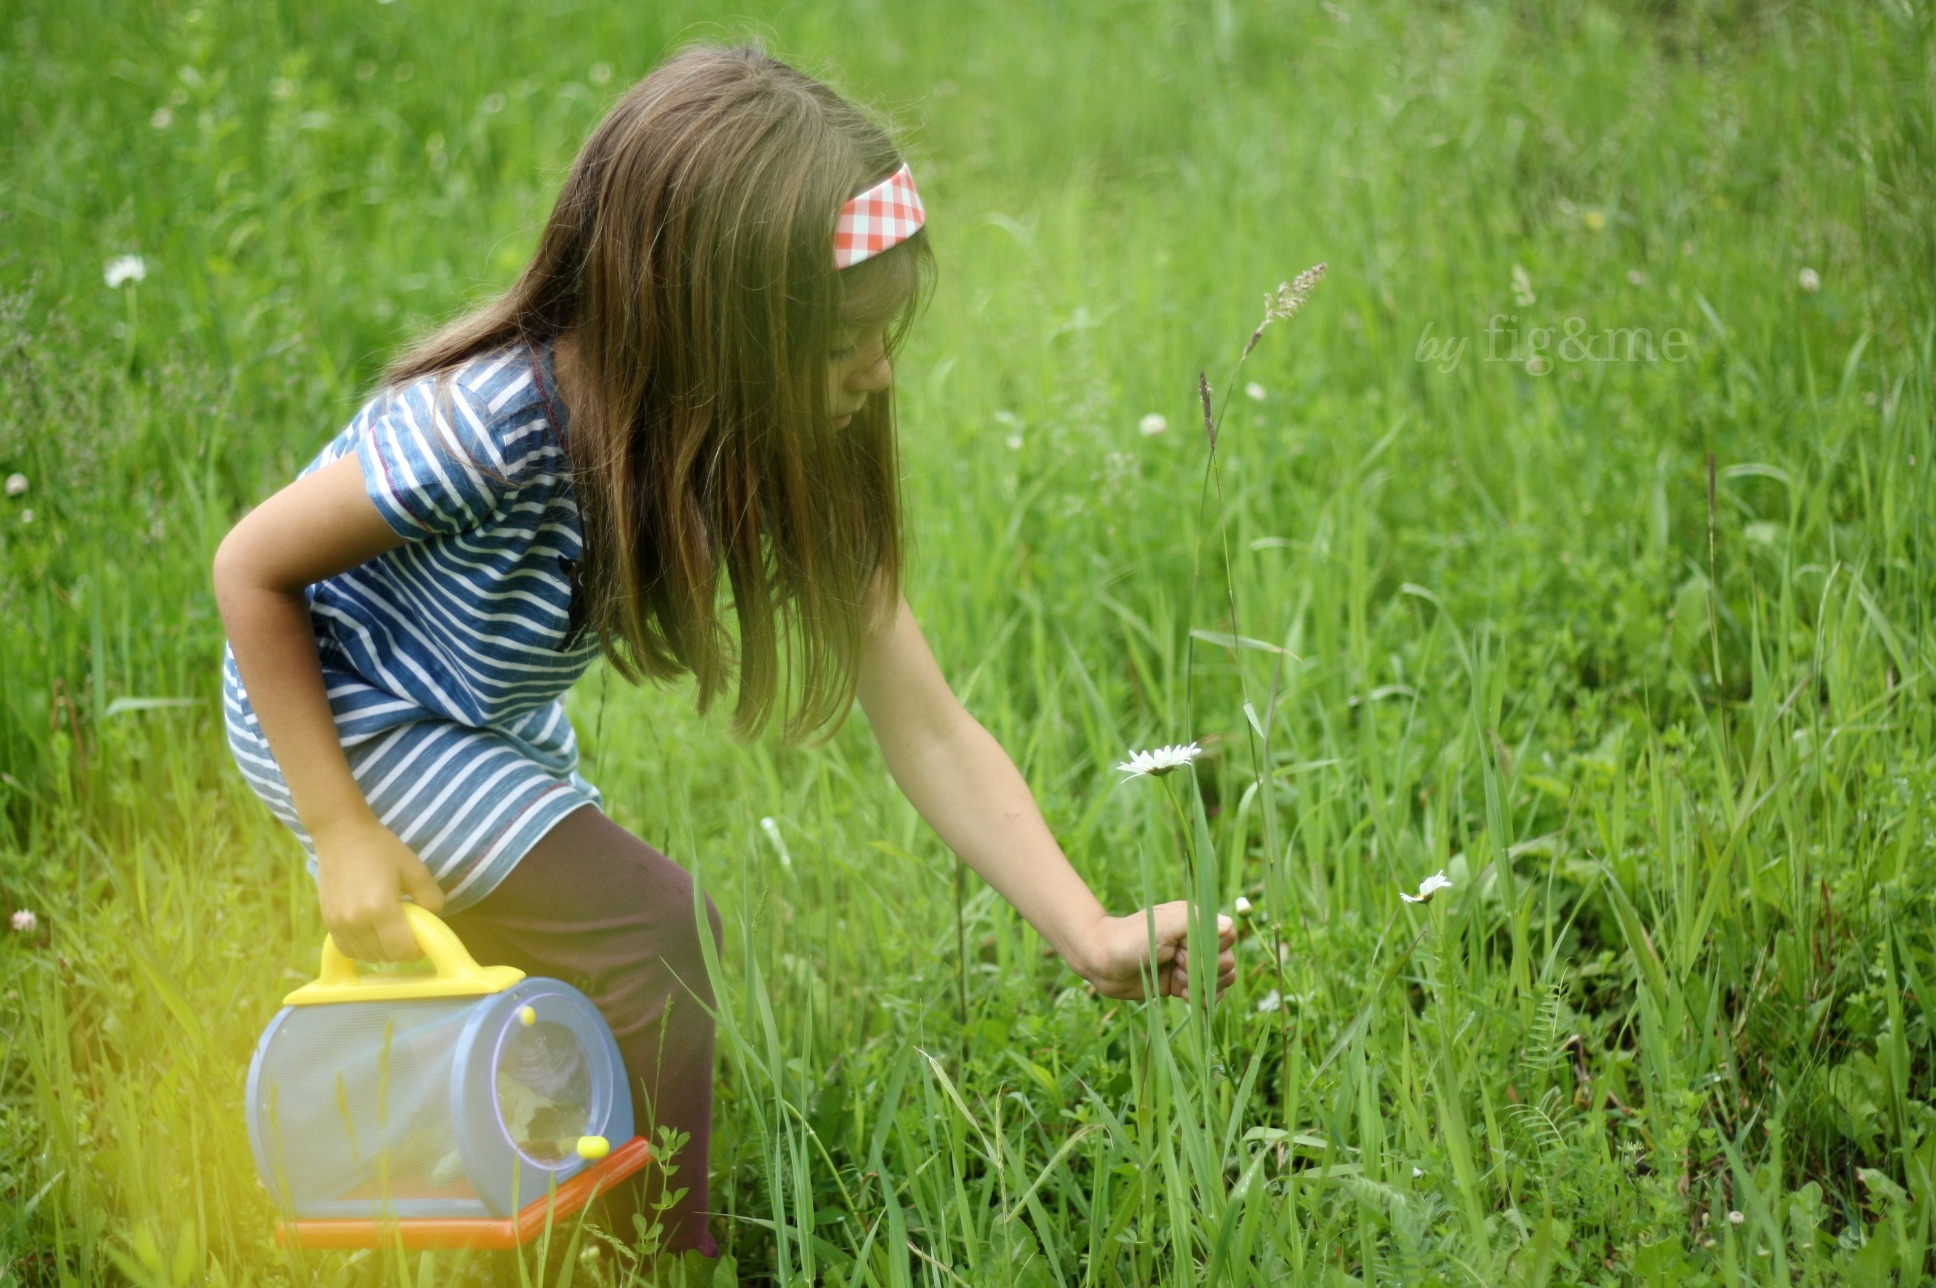 Finding insects and wildflowers, life learning.